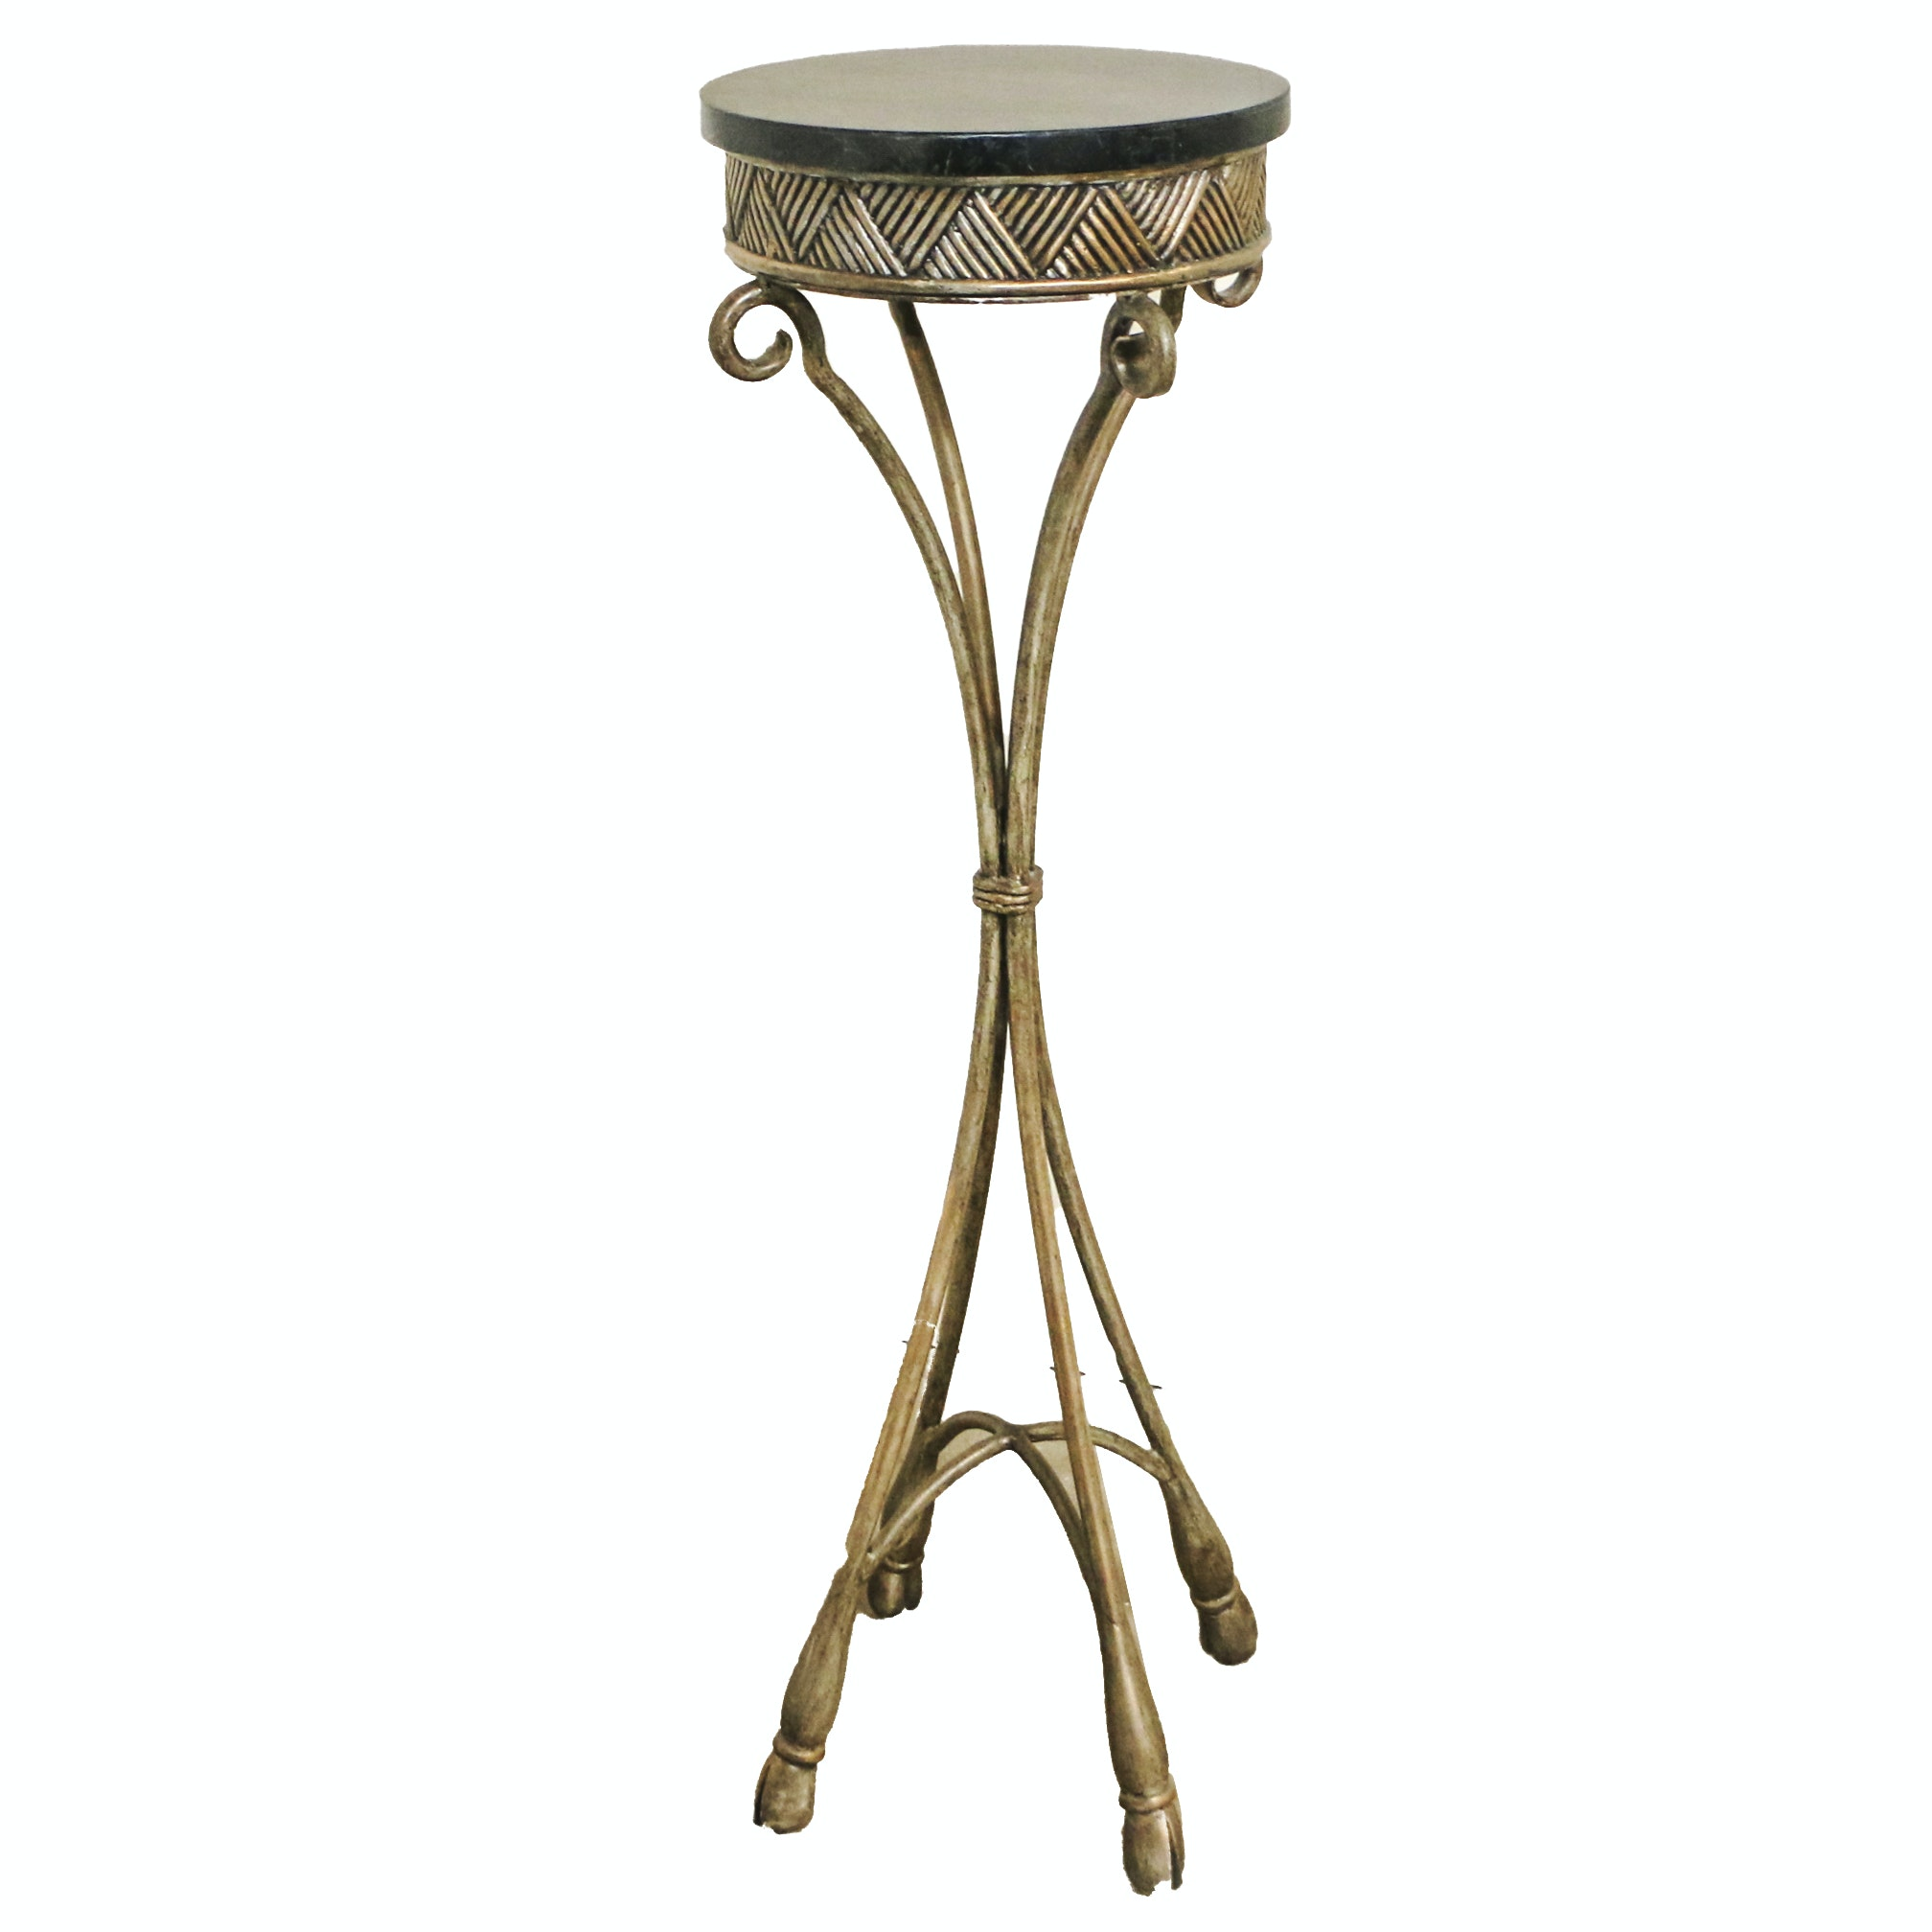 Metal and Stone Plant Stand, 21st Century